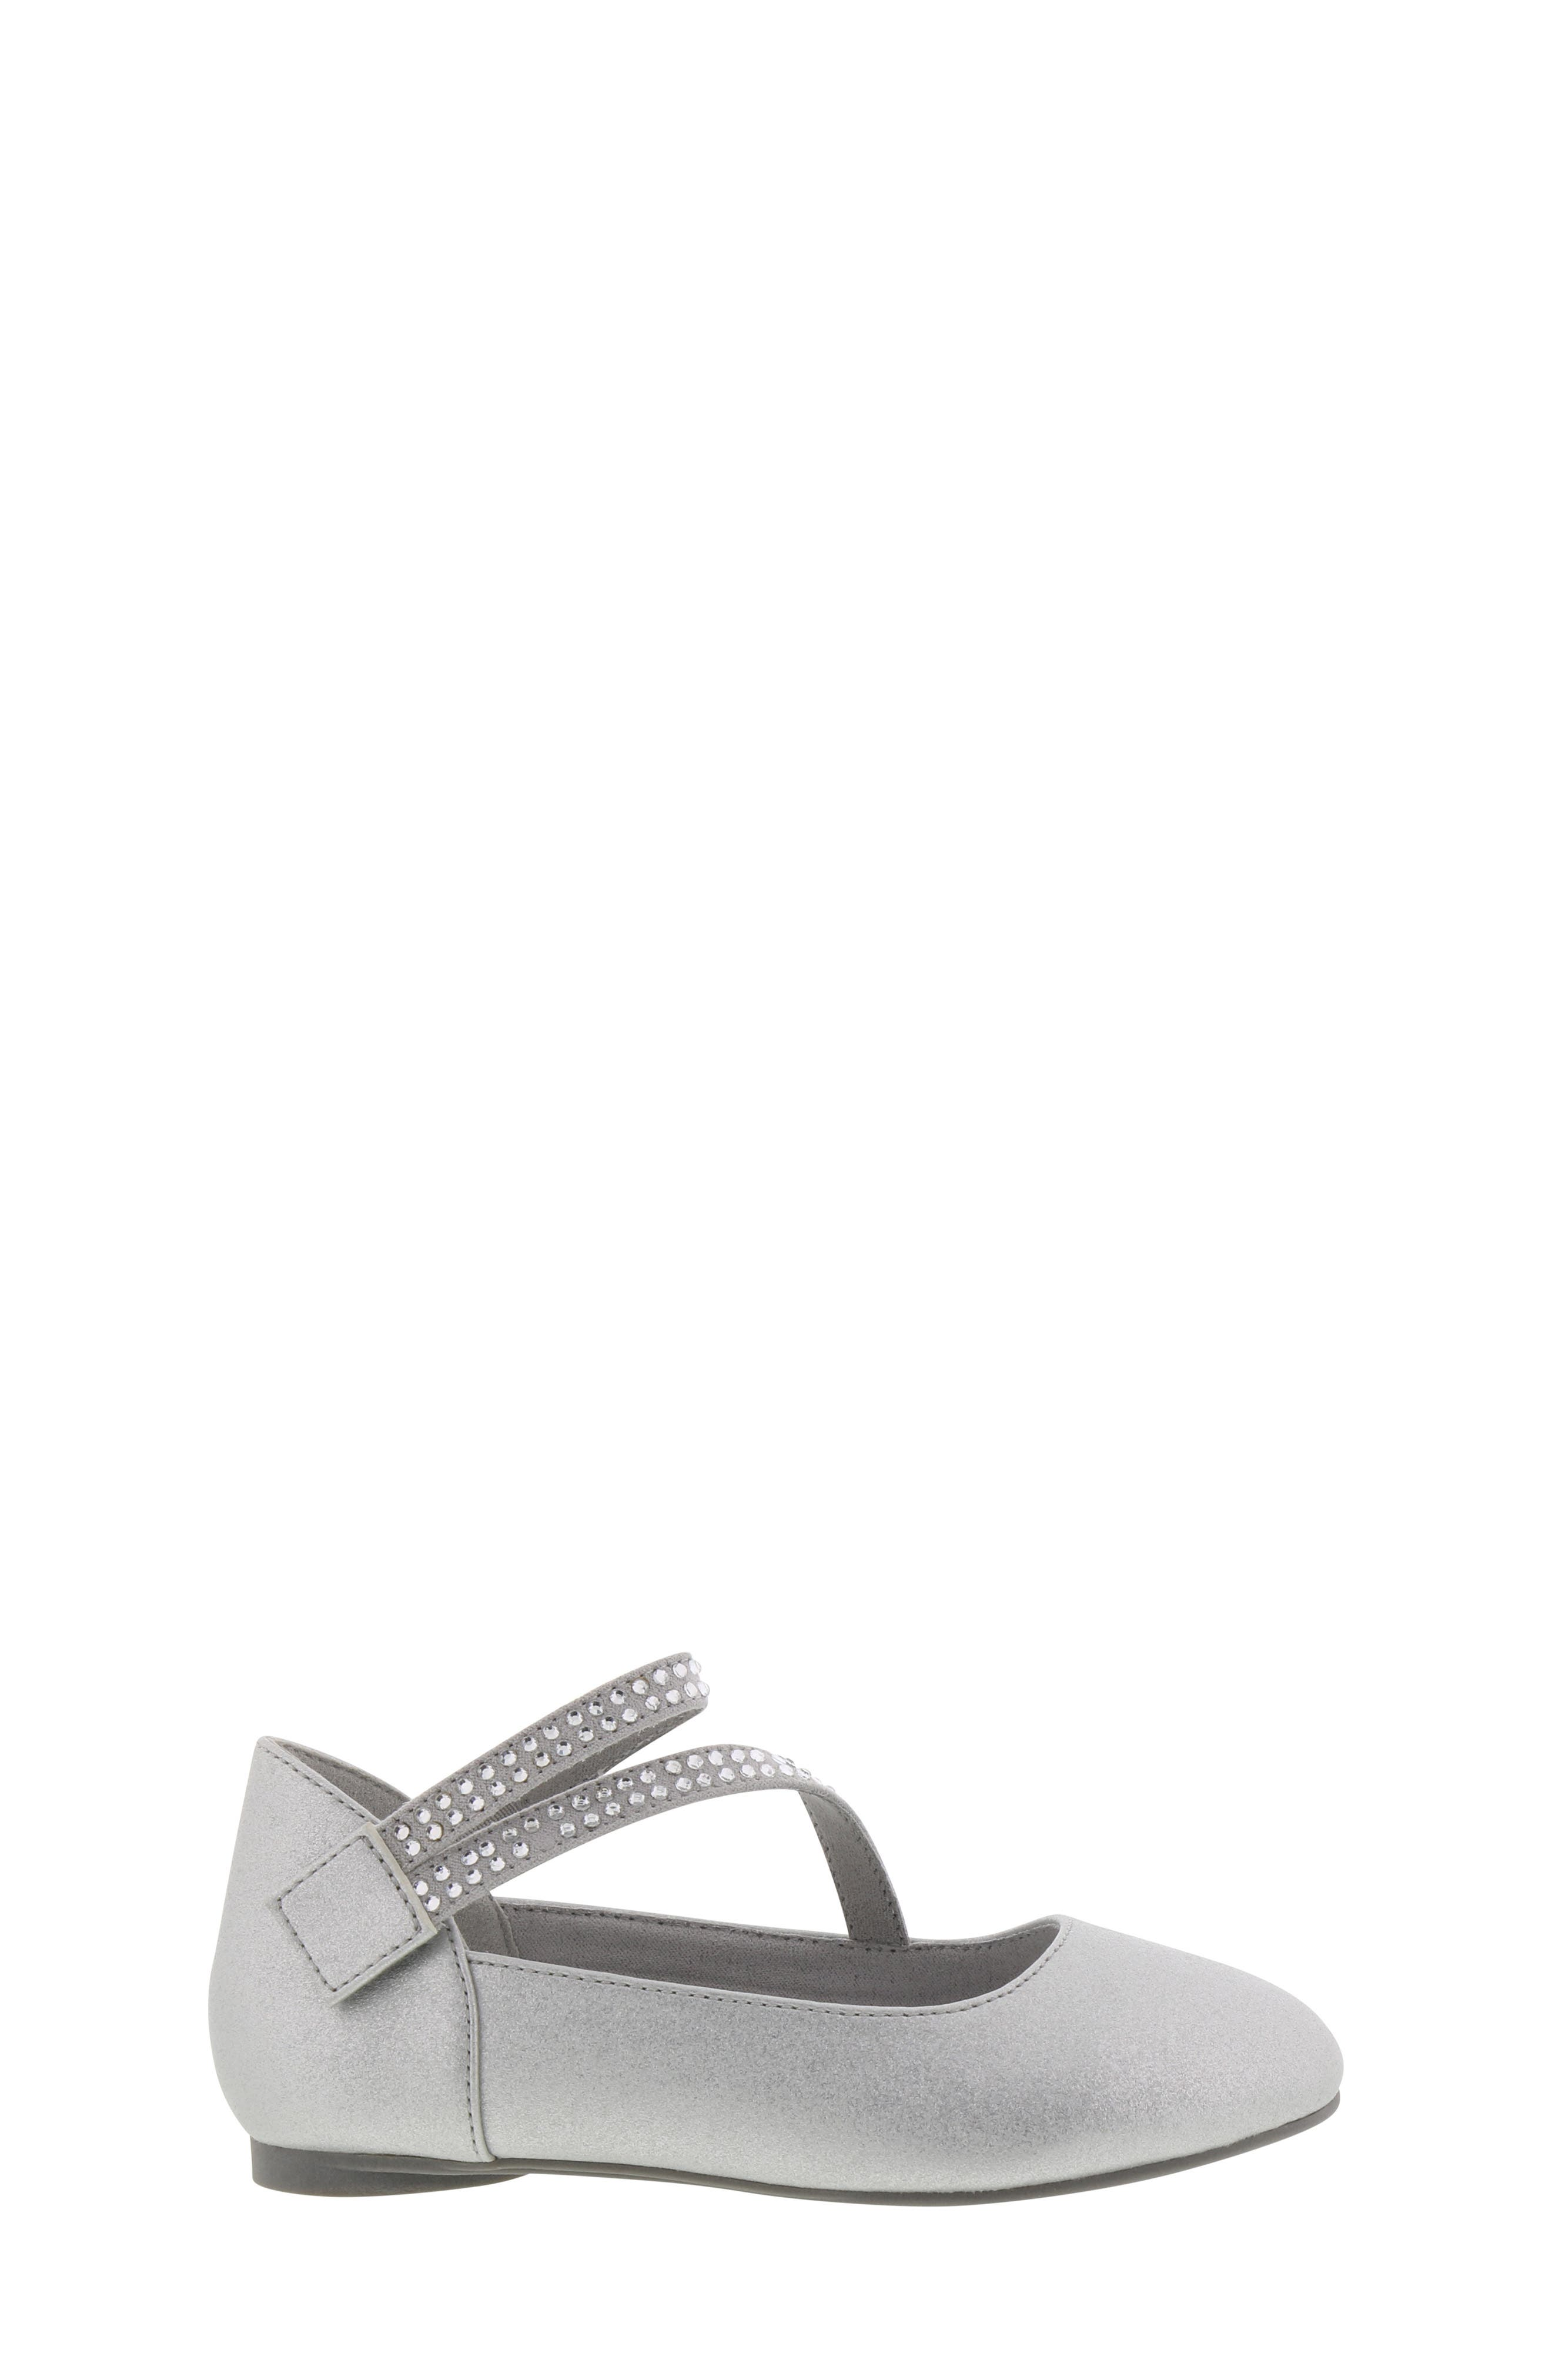 REACTION KENNETH COLE, Tap Lily-T Embellished Flat, Alternate thumbnail 3, color, SILVER